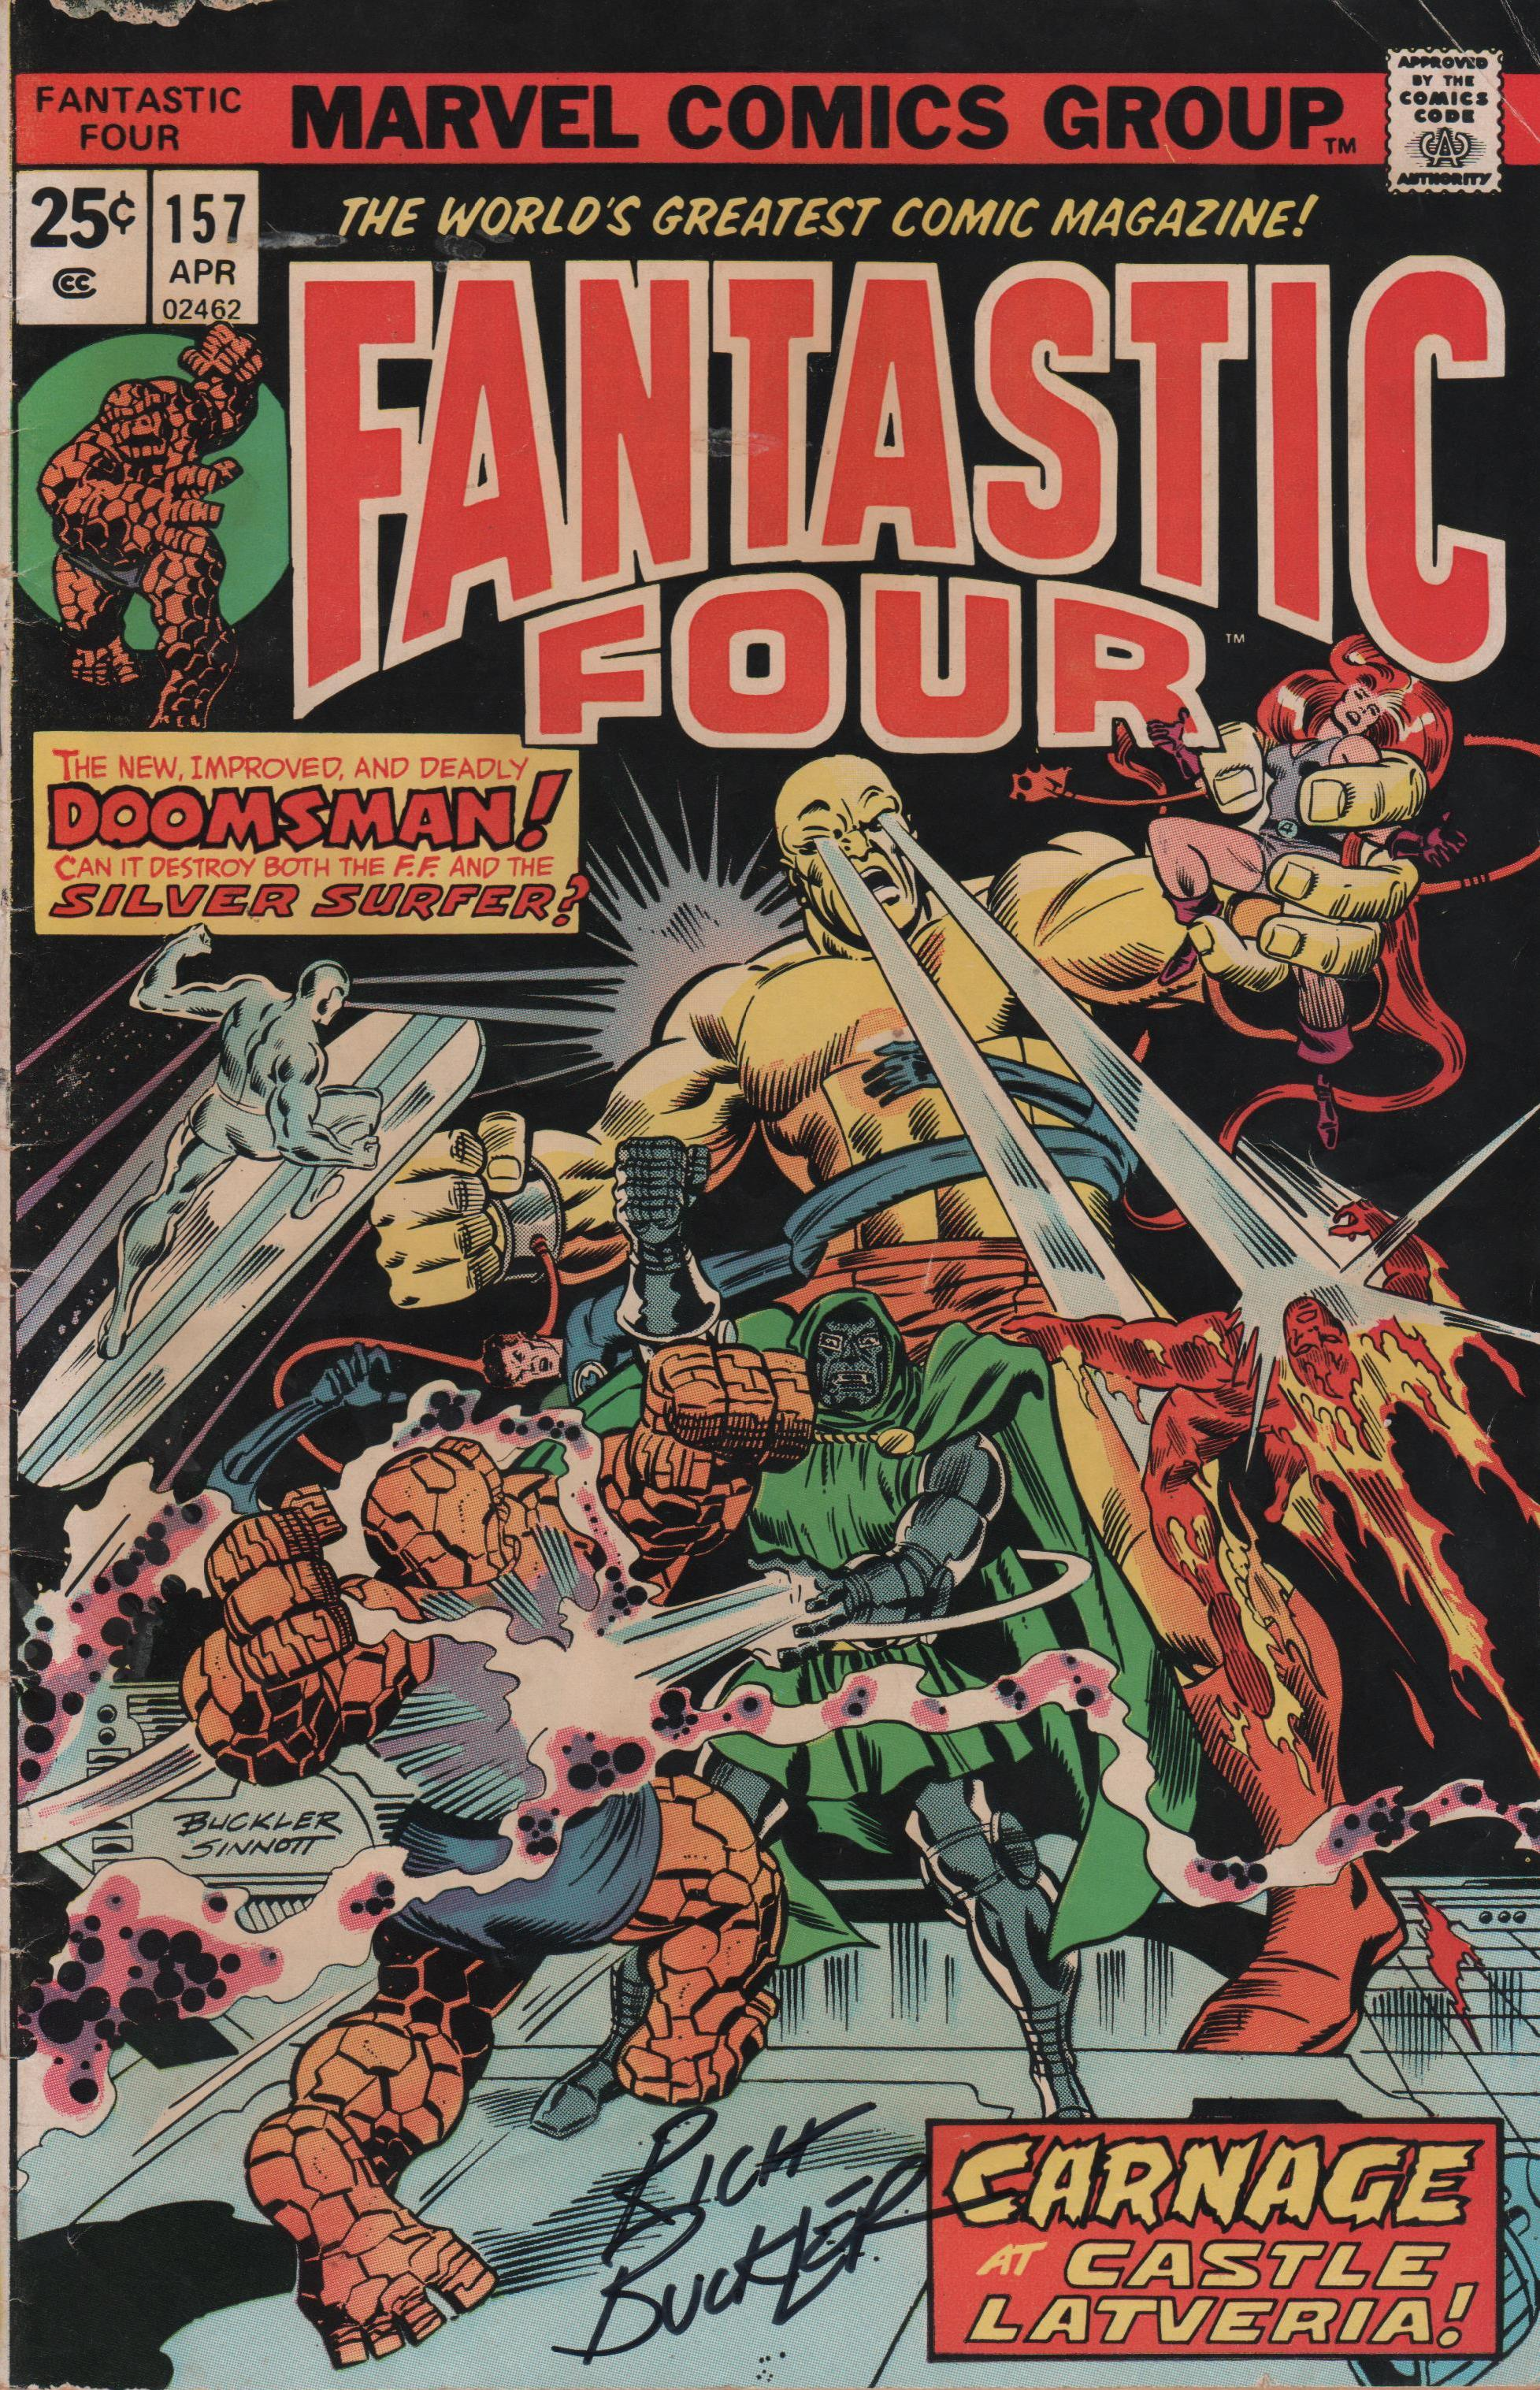 Rich Buckler Marvel39s Unsung Heroes Rich Buckler Magazines and